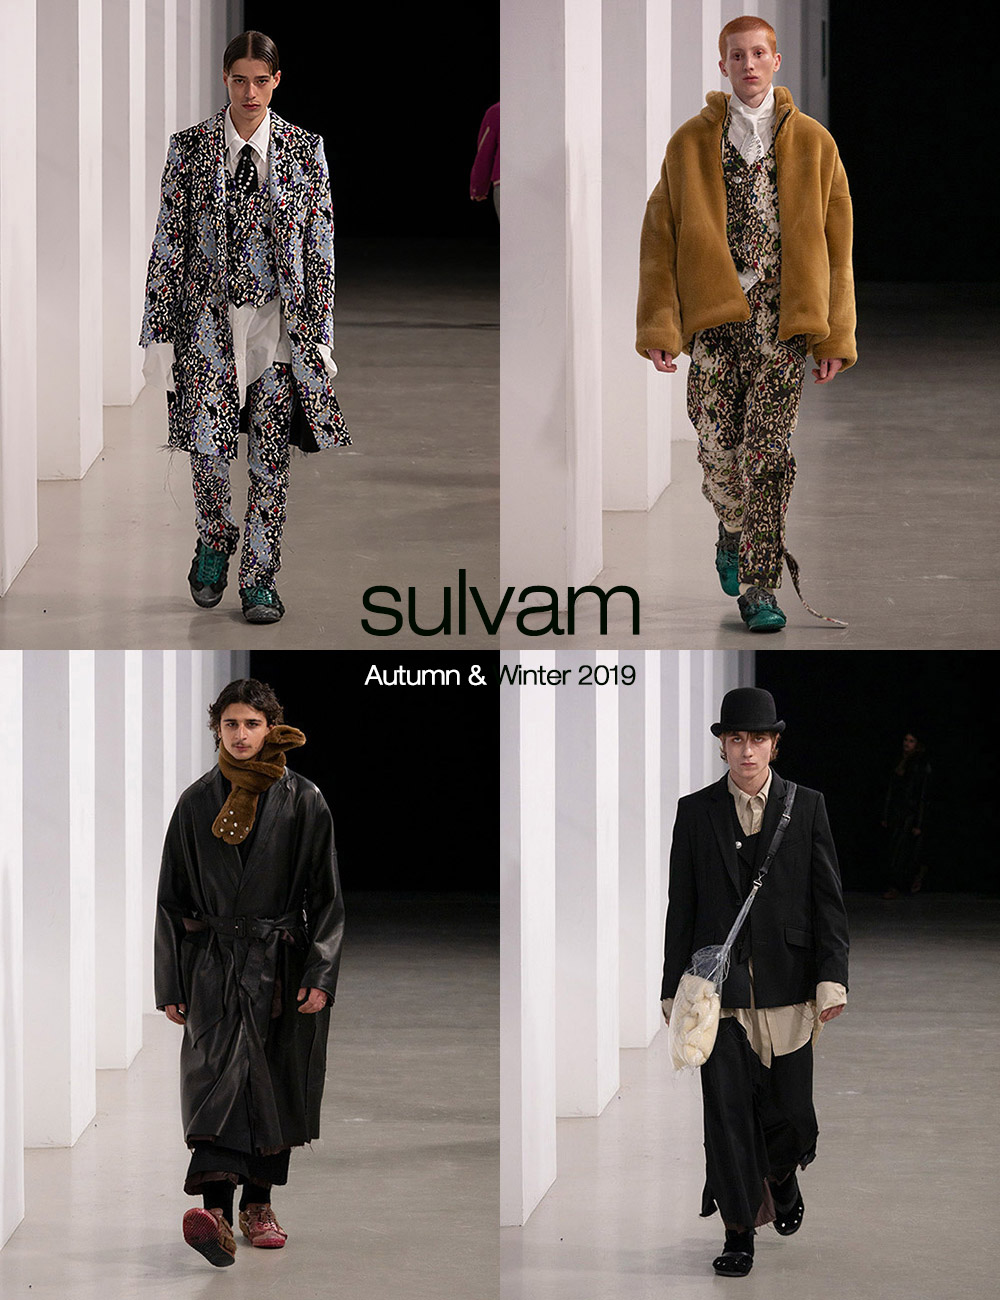 sulvam 2019 FALL/WINTER